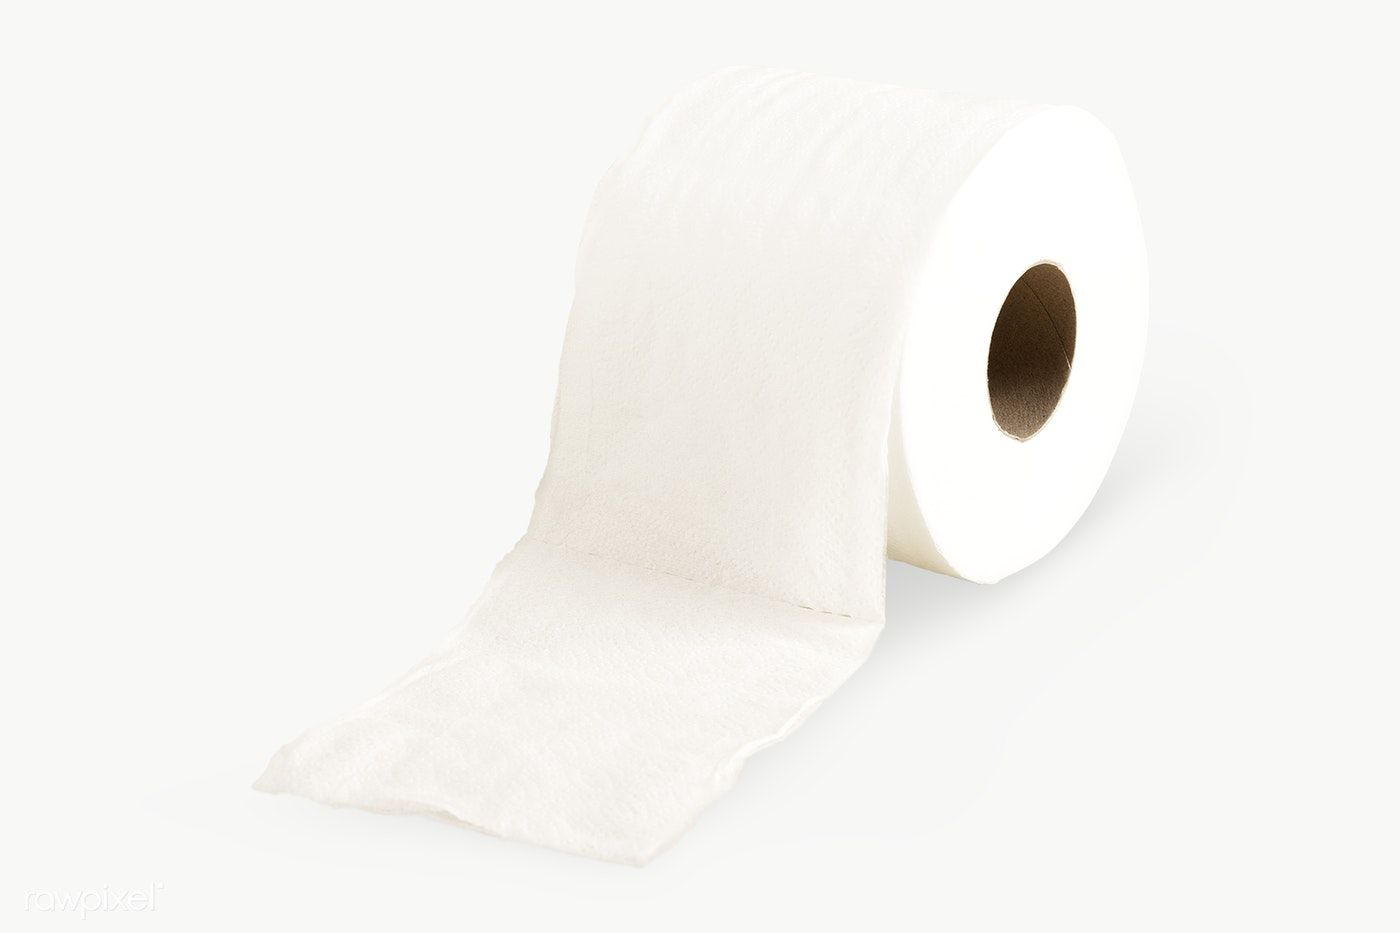 Toilet Tissue Element Transparent Png Free Image By Rawpixel Com Teddy Rawpixel Tissue Paper Roll Tissue Toilet